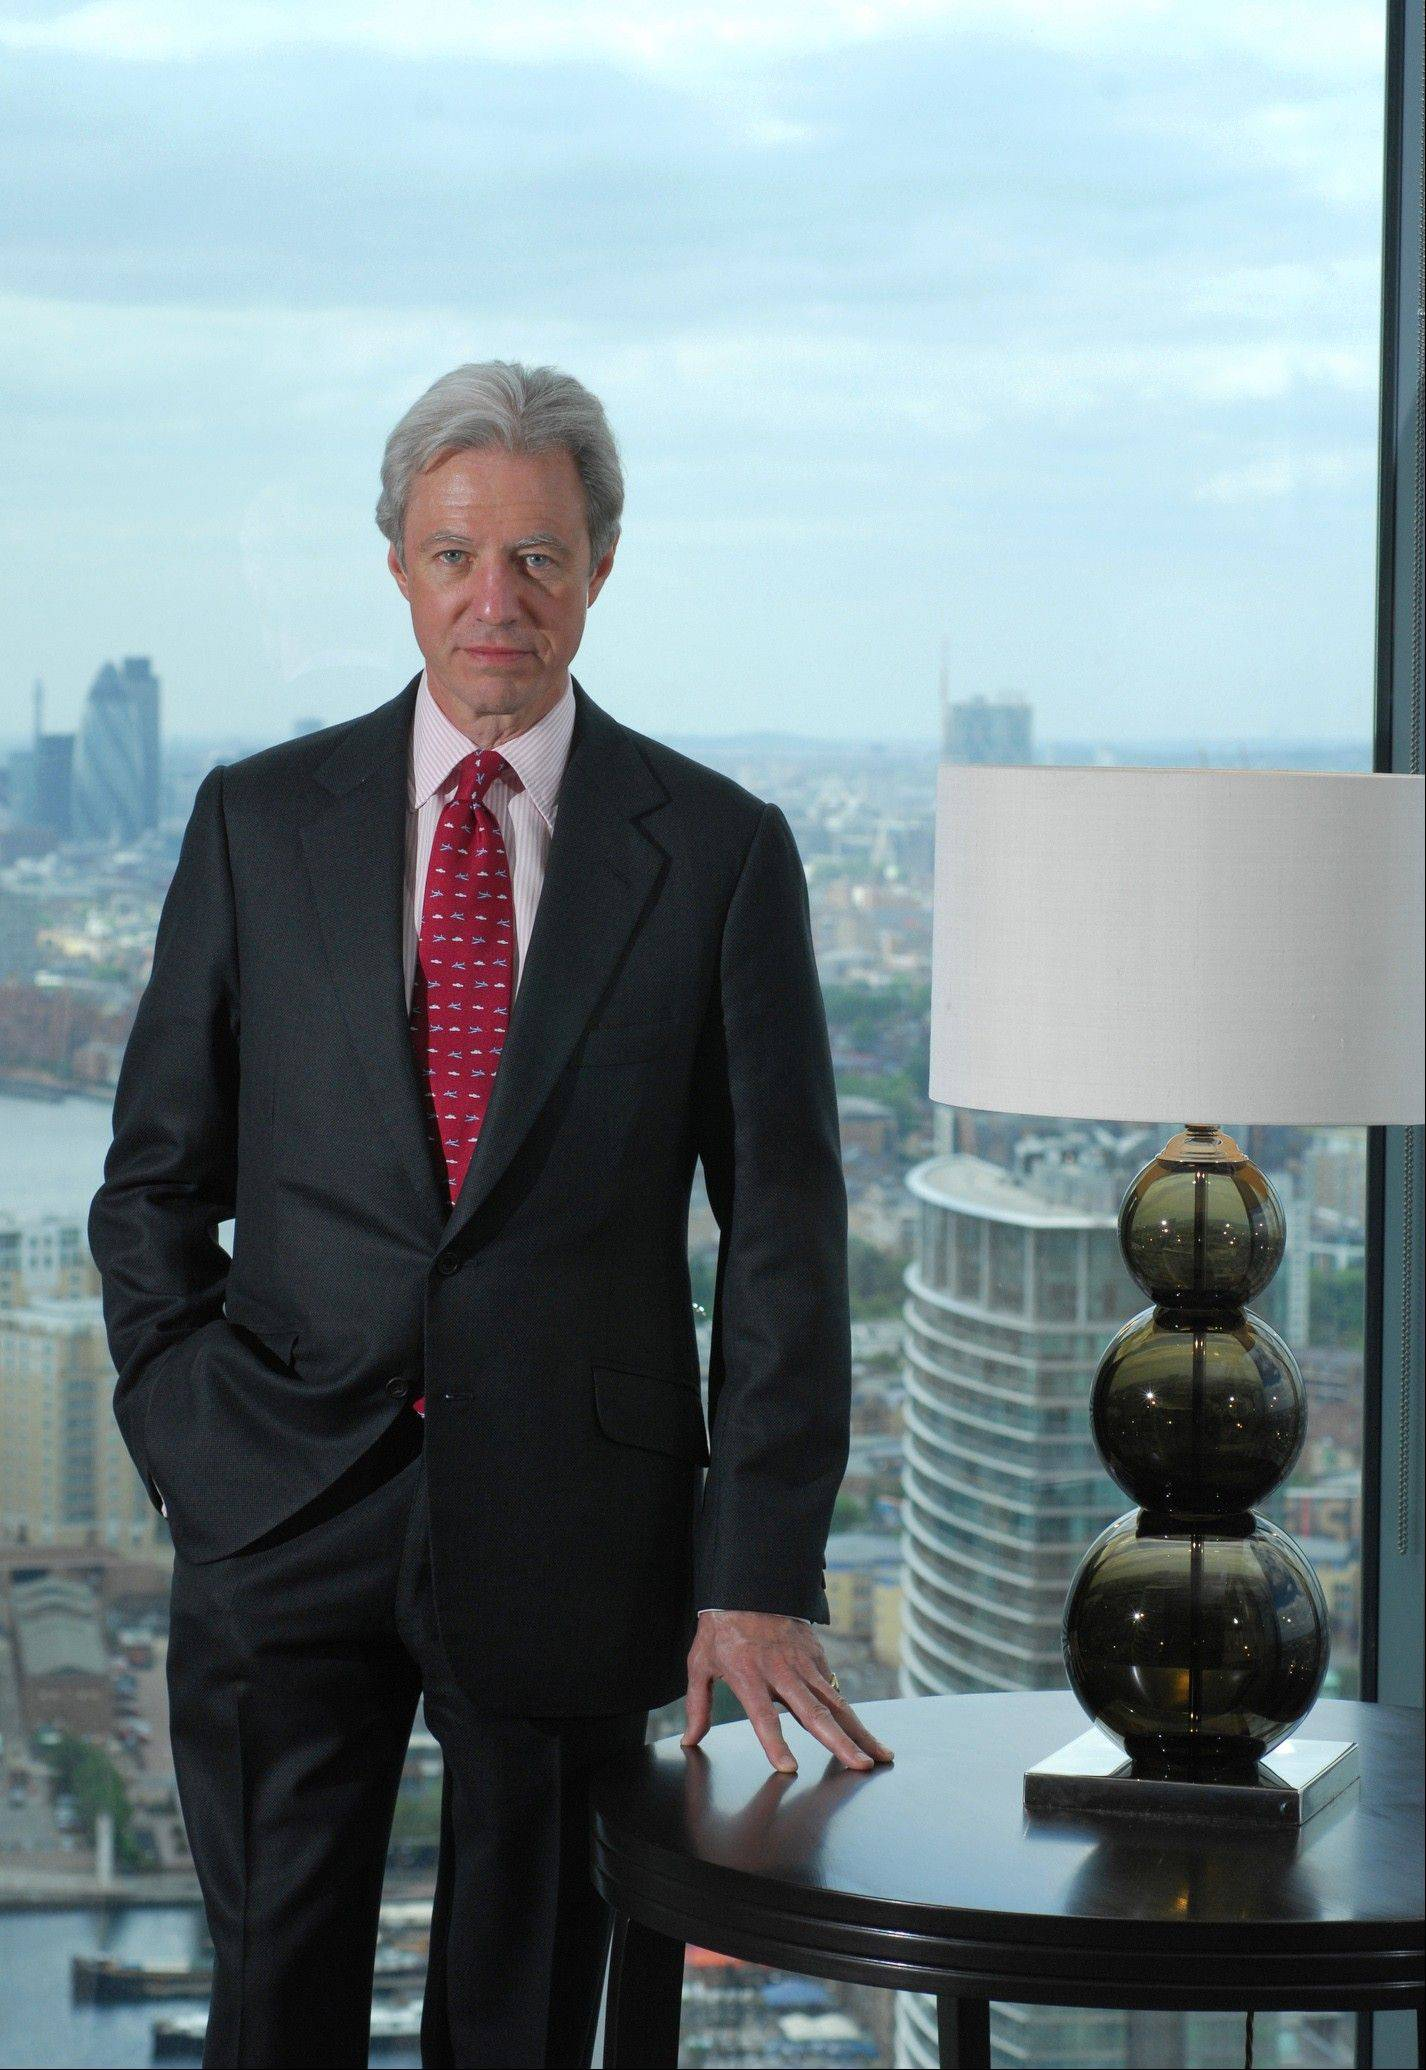 This undated file photo made available by Barclays Banksshows the Chairman of United Kingdom-based Barclays bank Marcus Agius in London. The chairman of Barclays announced his resignation Monday after accepting responsibility for a price-fixing scandal that saw the bank slapped with trans-Atlantic fines of $453 million.